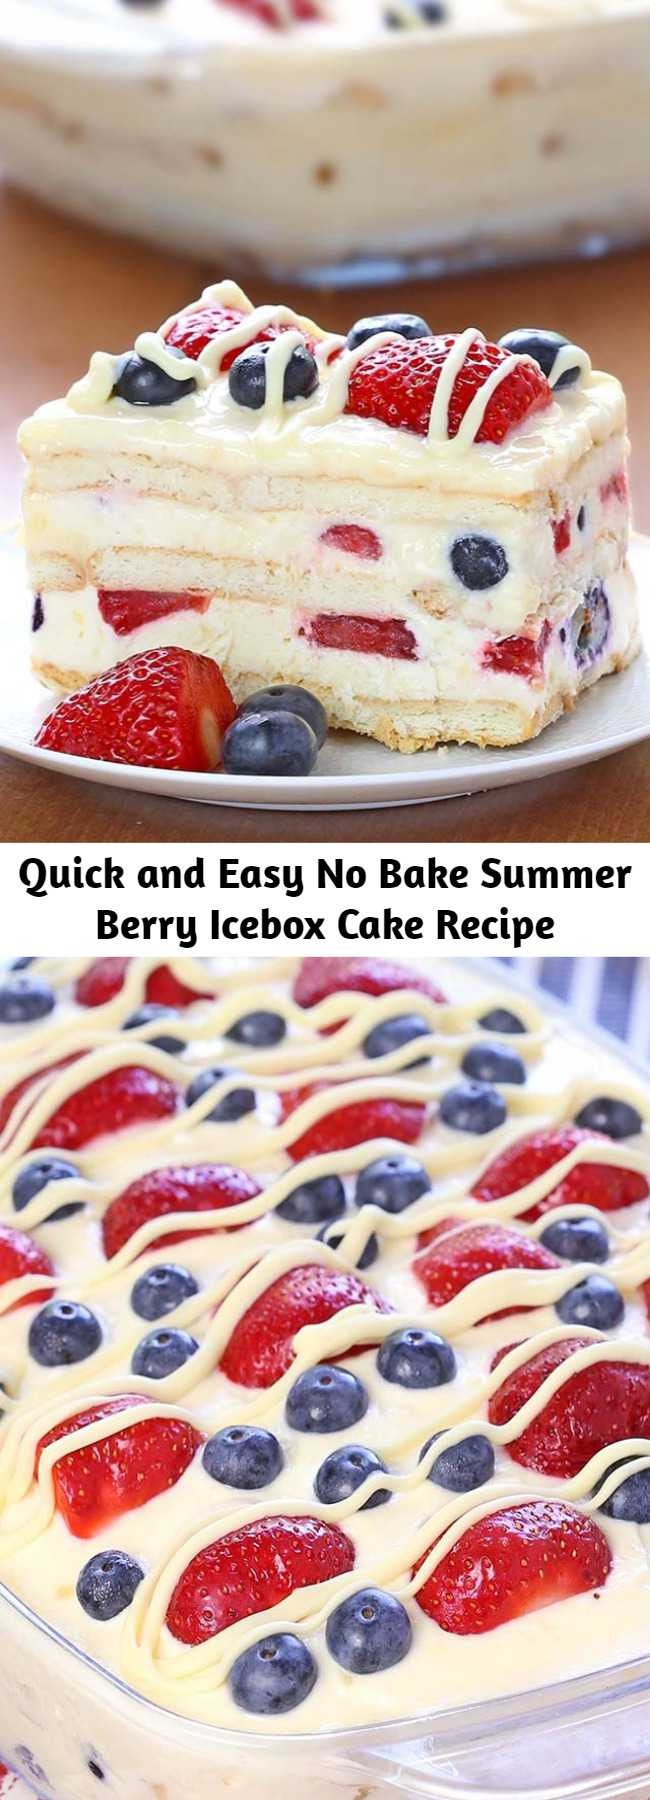 Quick and Easy No Bake Summer Berry Icebox Cake Recipe - Looking for a quick and easy Summer dessert recipe? Try out delicious No Bake Summer Berry Icebox Cake! There's very little preparation involved in this recipe, which makes it great for hot summer days or for crazy busy days. You can throw it together whenever you have time (even the day before is fine) and it will be ready and waiting for you in the refrigerator when you want a sweet treat!